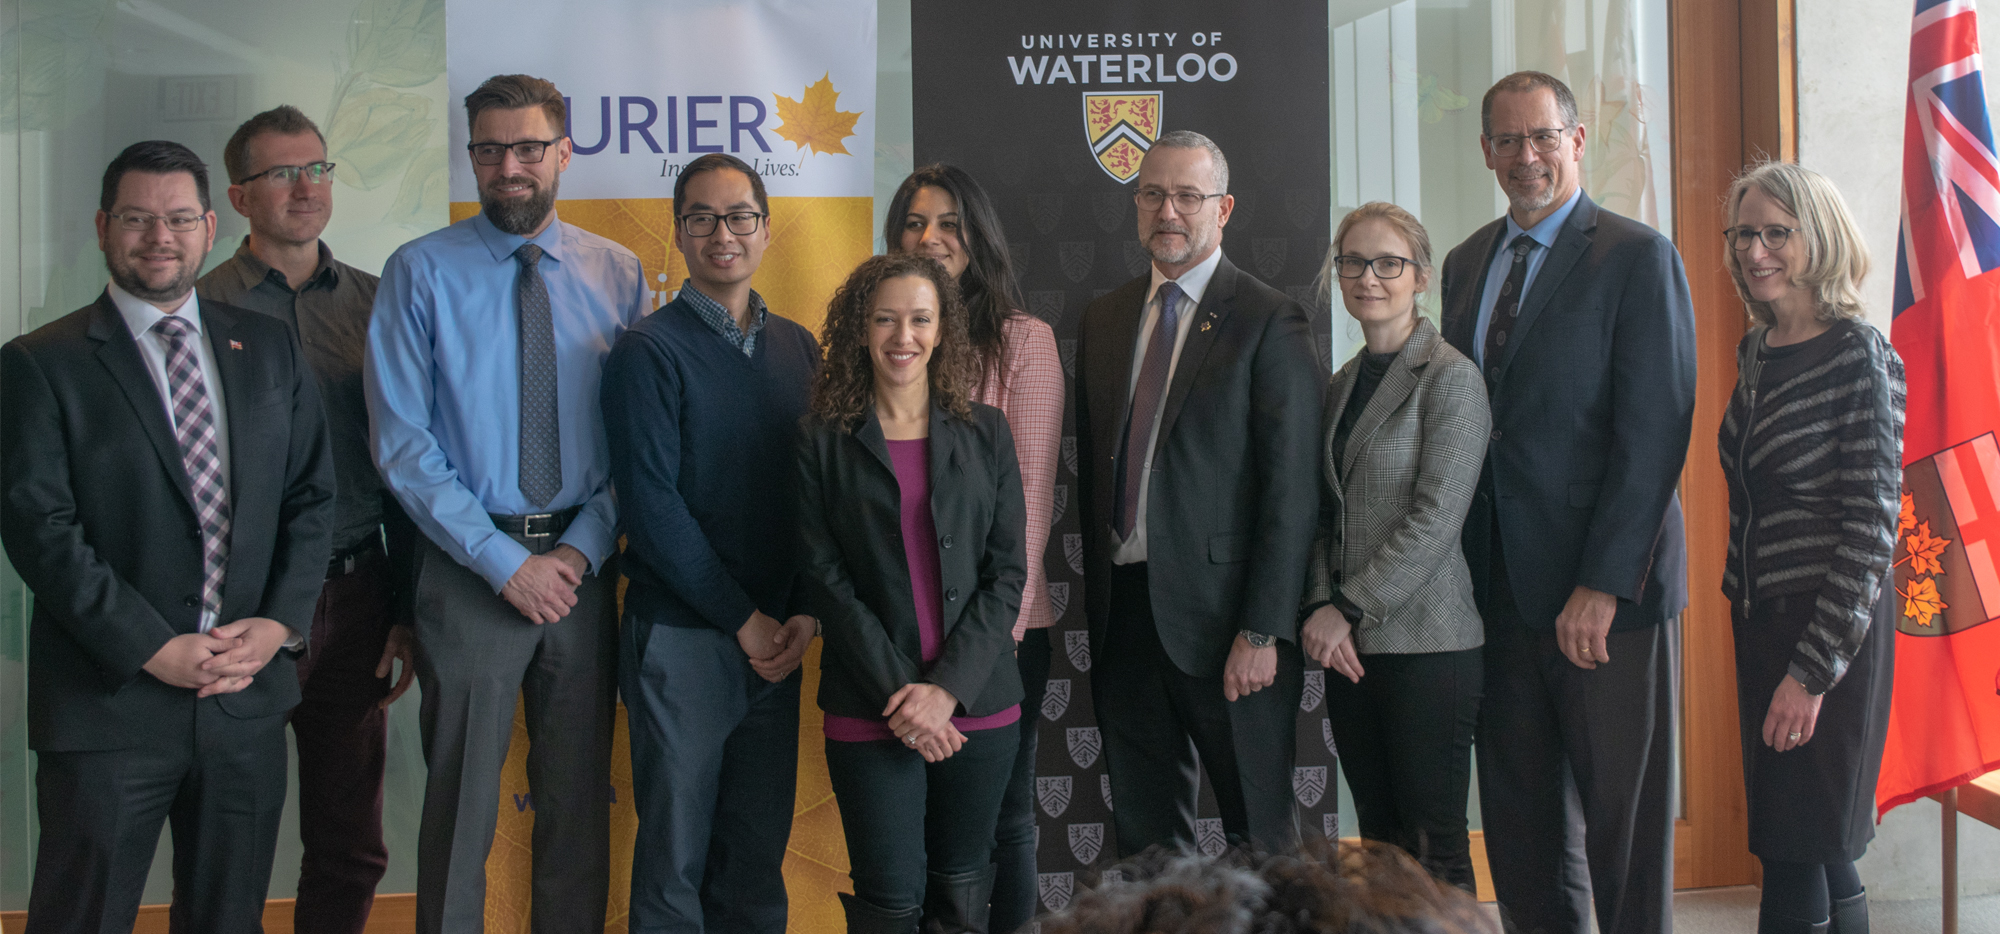 Representatives from the University of Waterloo, Laurier University and the Ontario Government standing and smiling